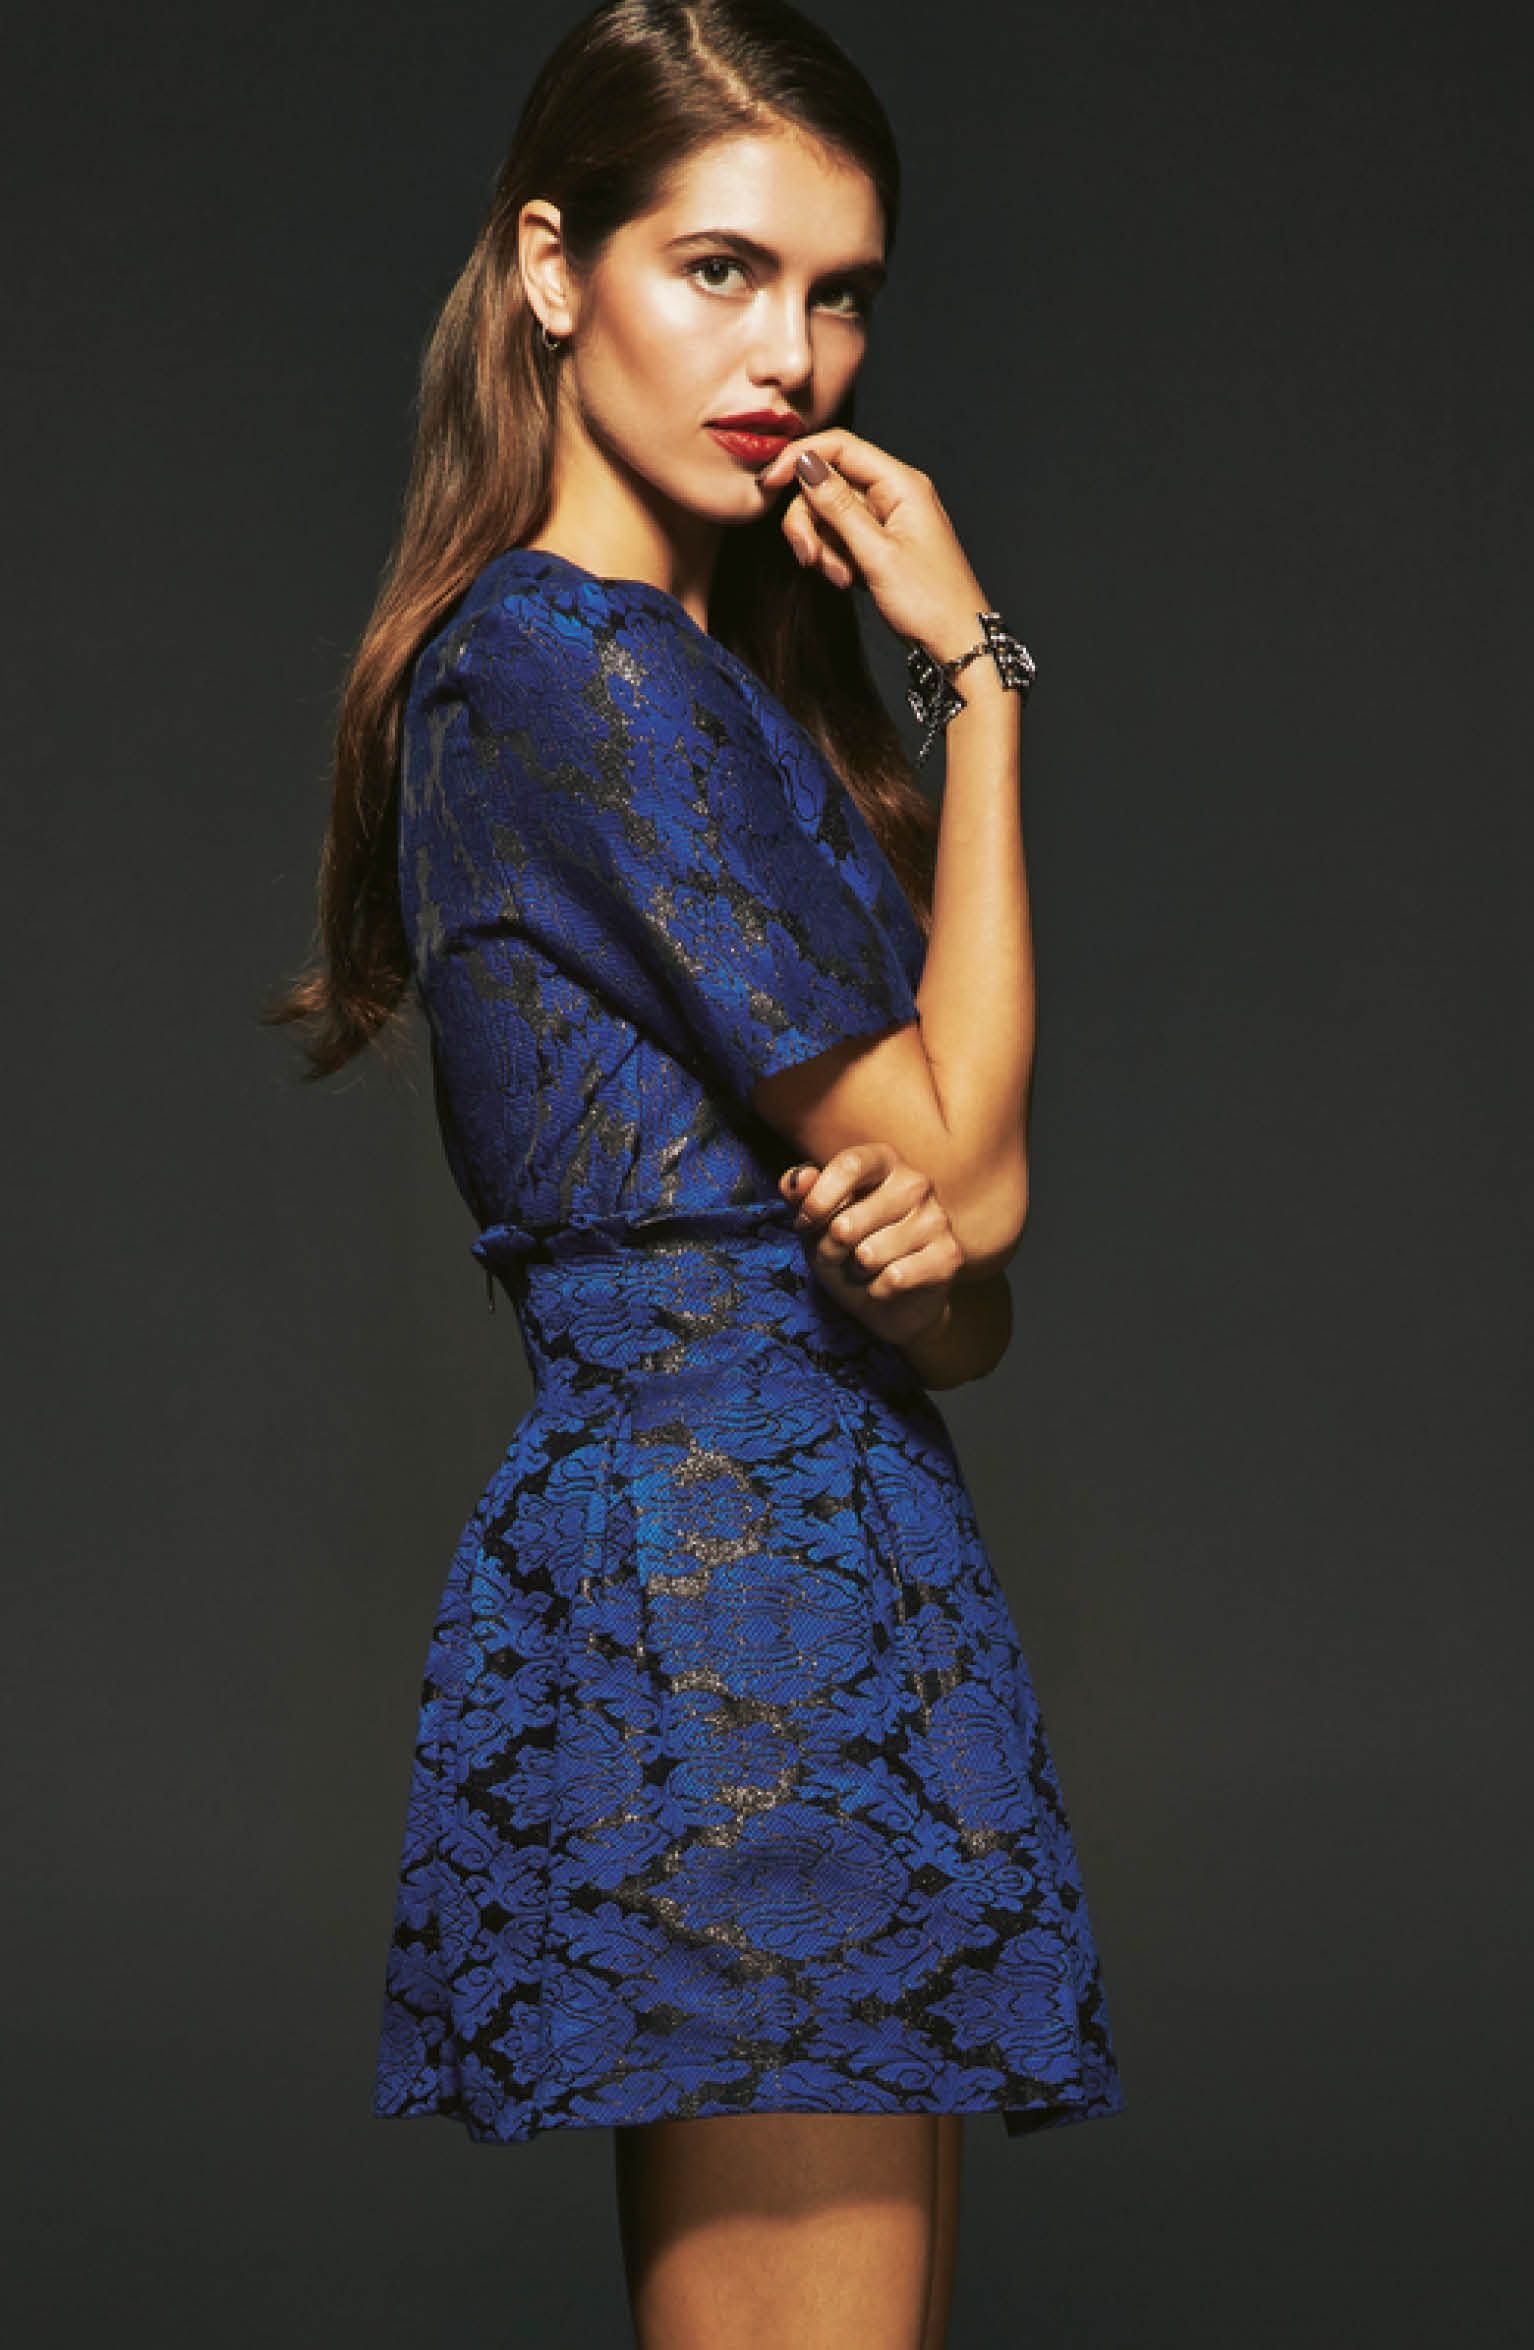 Fashion style Perfect the trend blue dress for girls